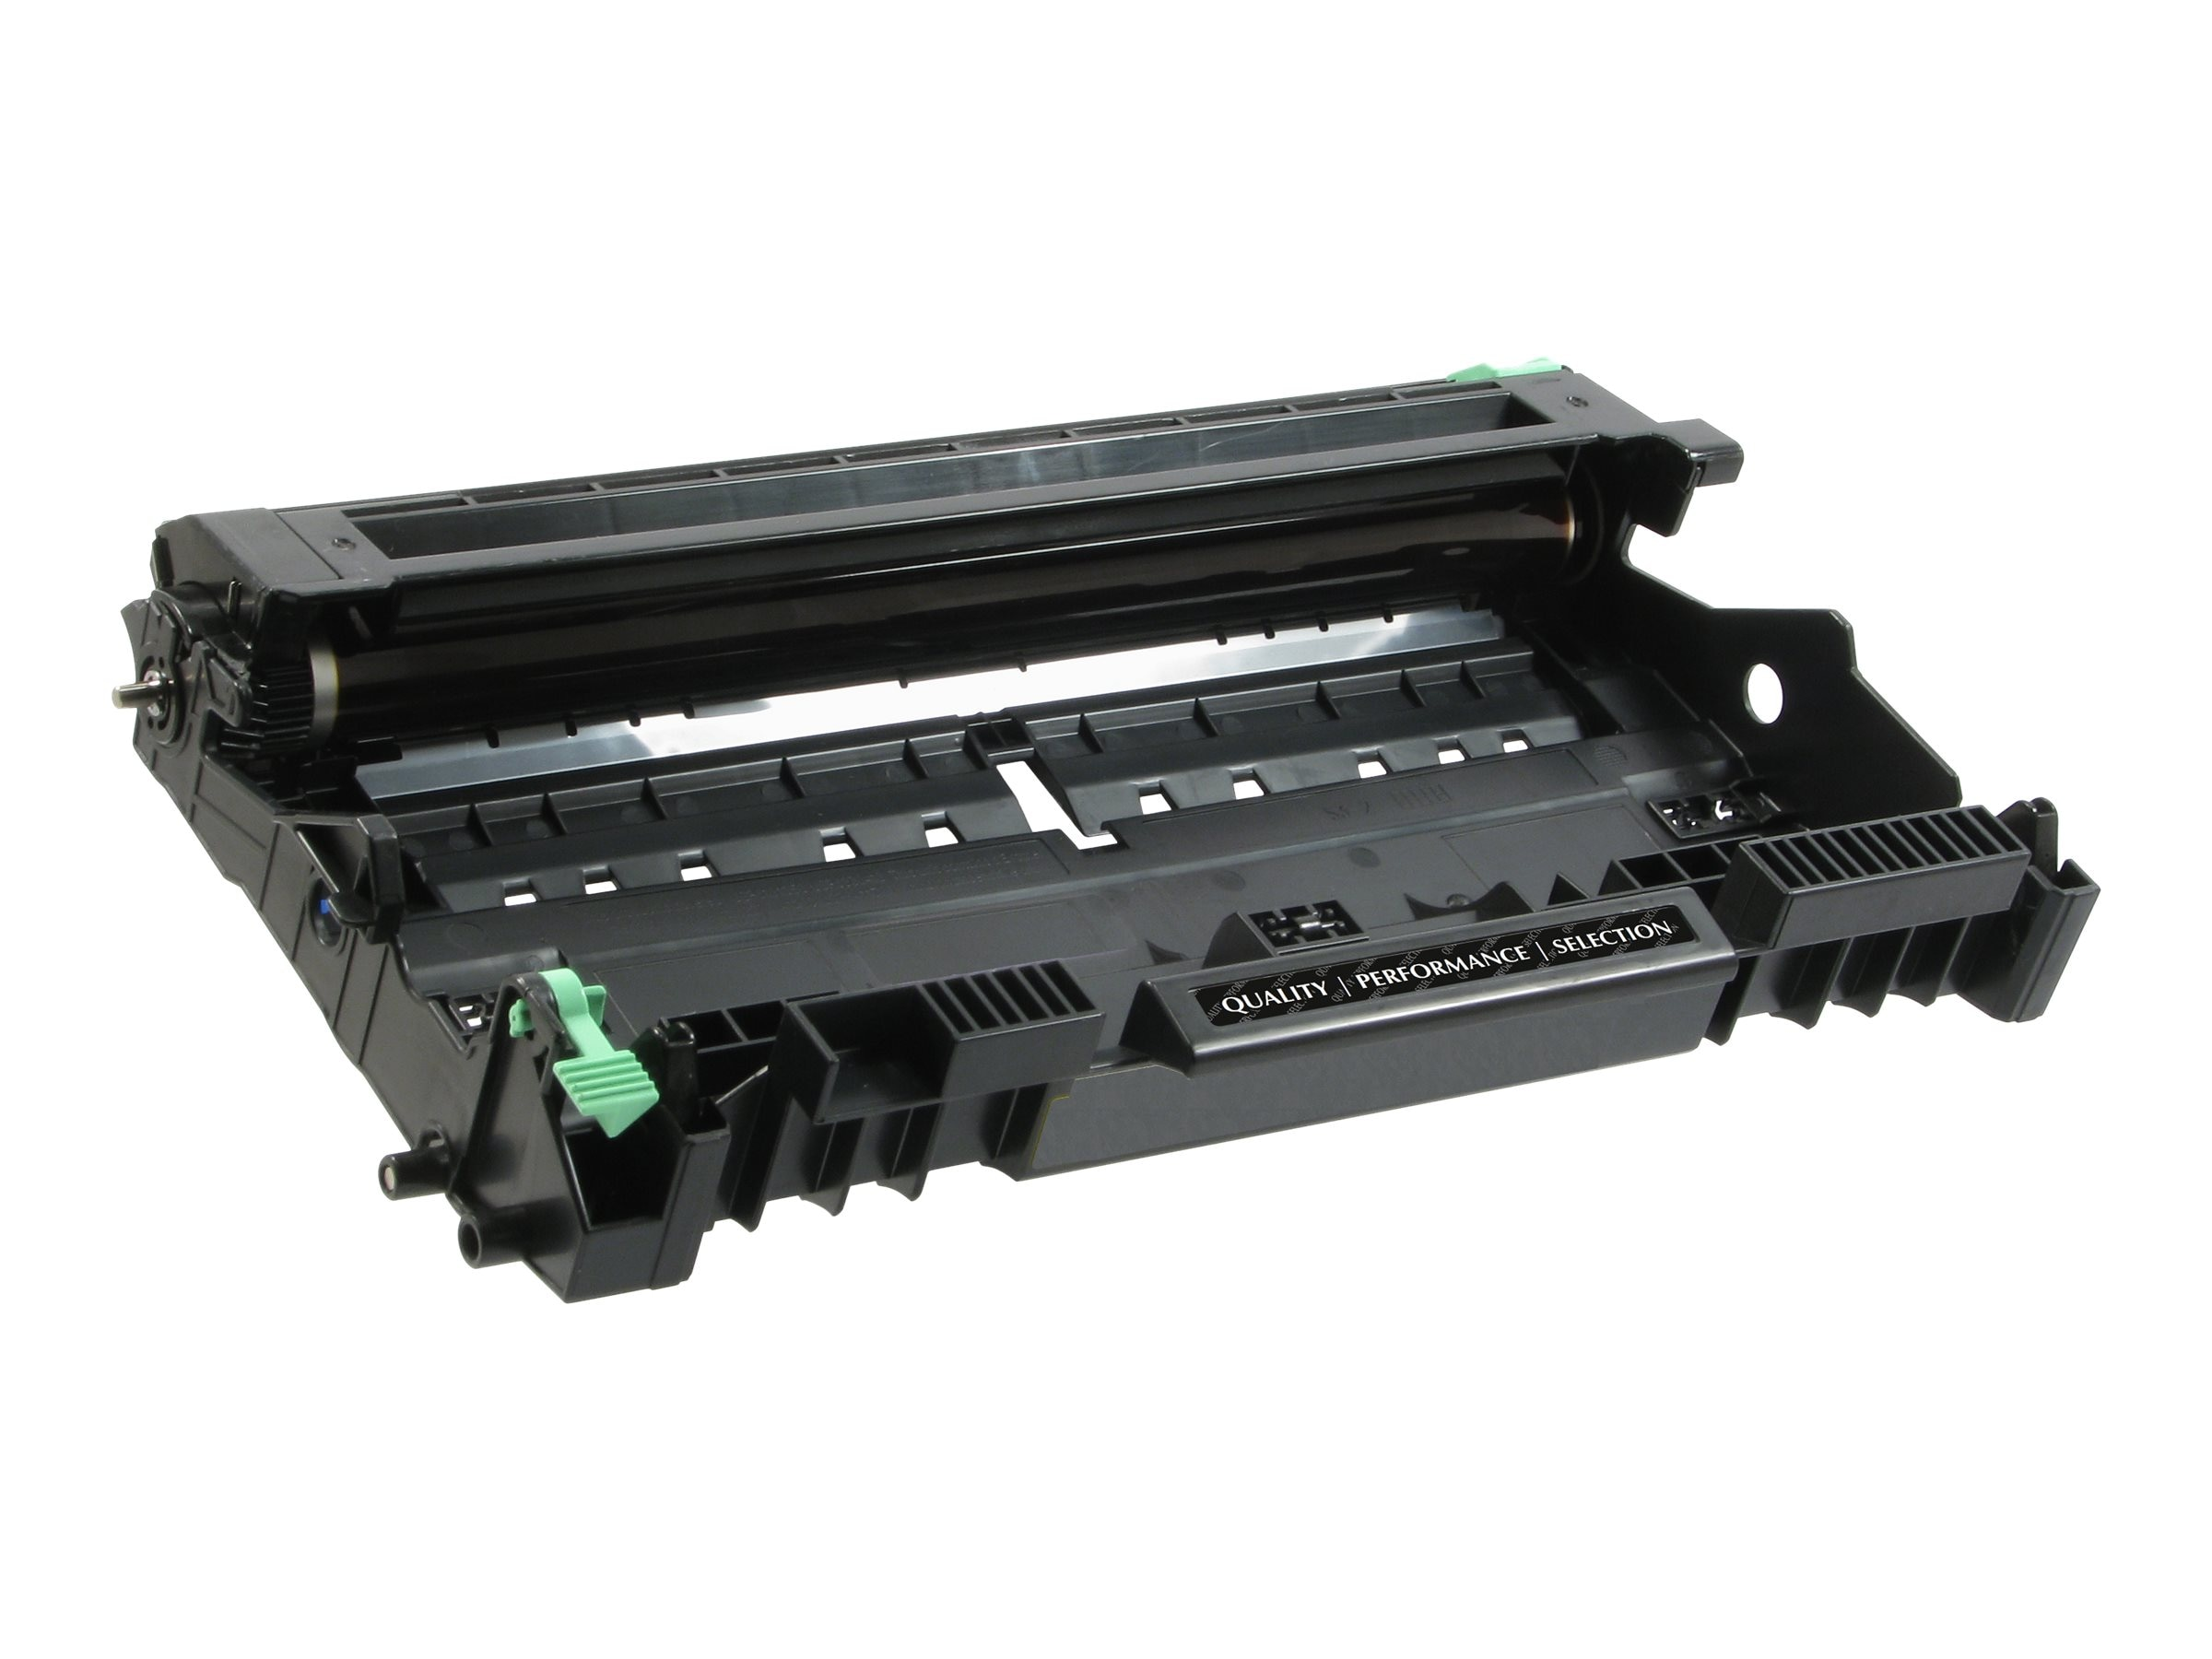 V7 DR720 Replacement Drum Unit for Brother MFC-8710DW